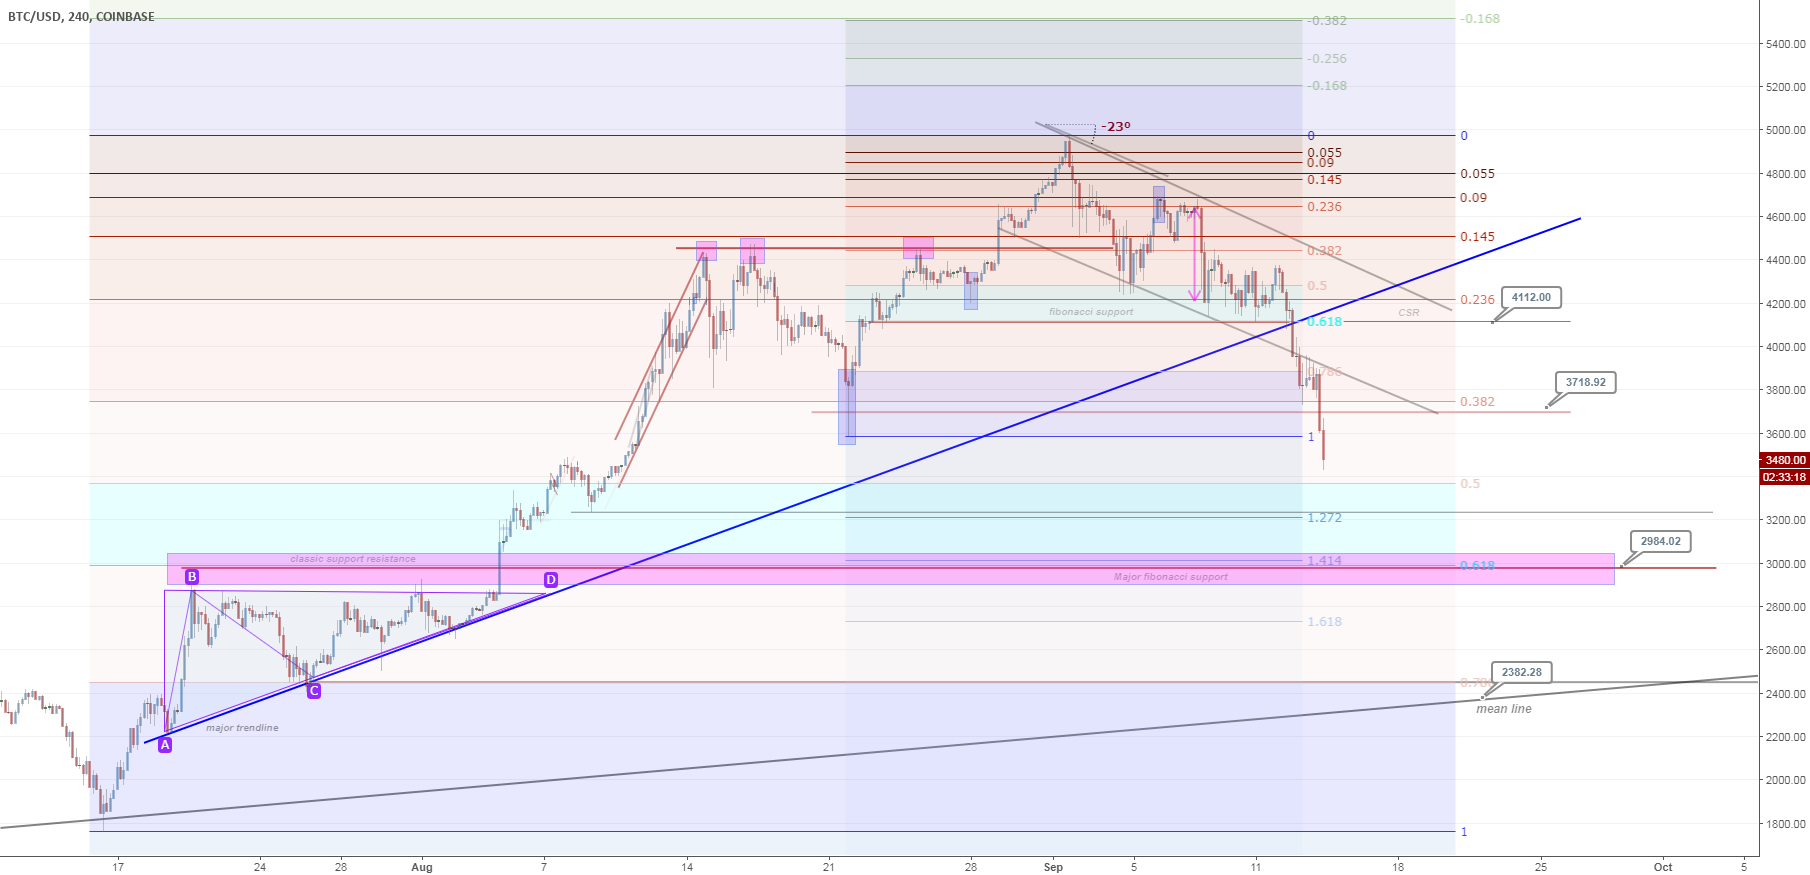 BTCUSD bearish continue